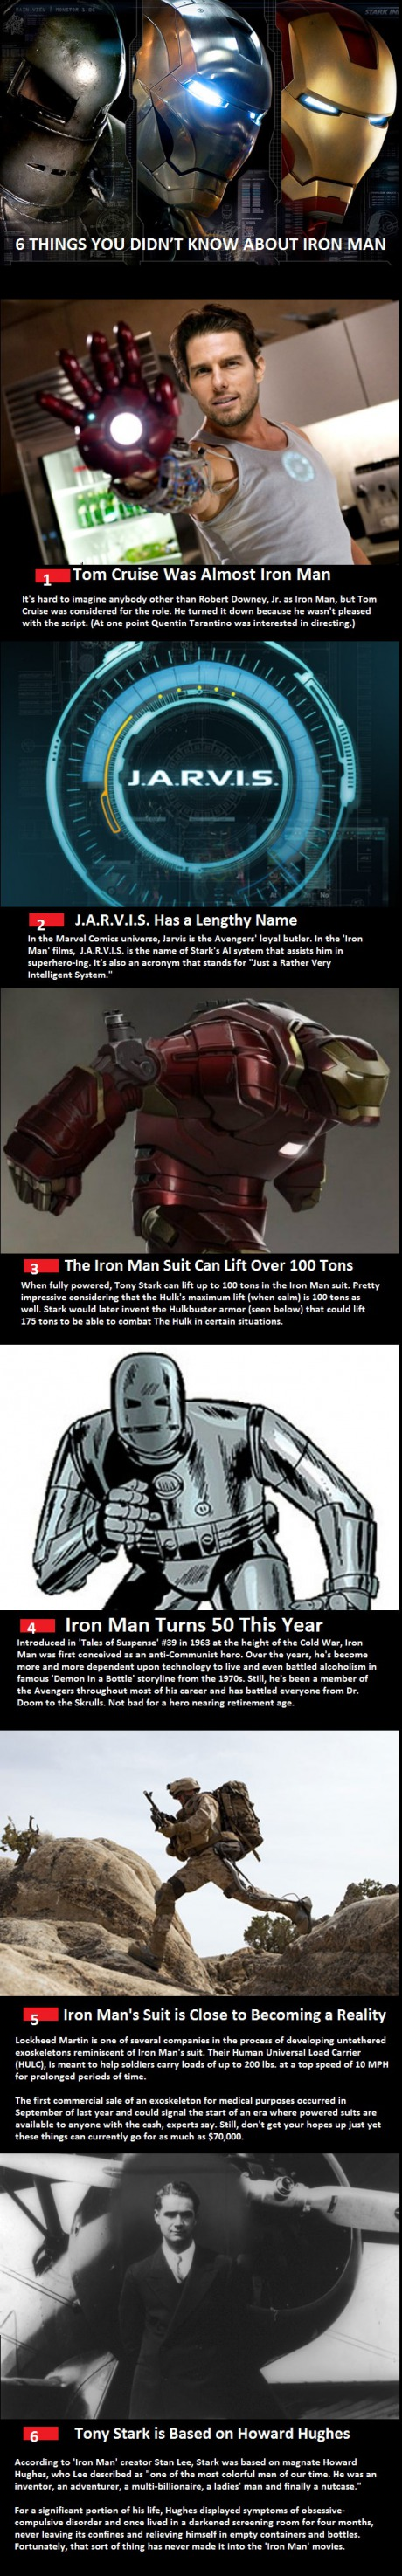 funny-picture-interesting-facts-about-iron-man